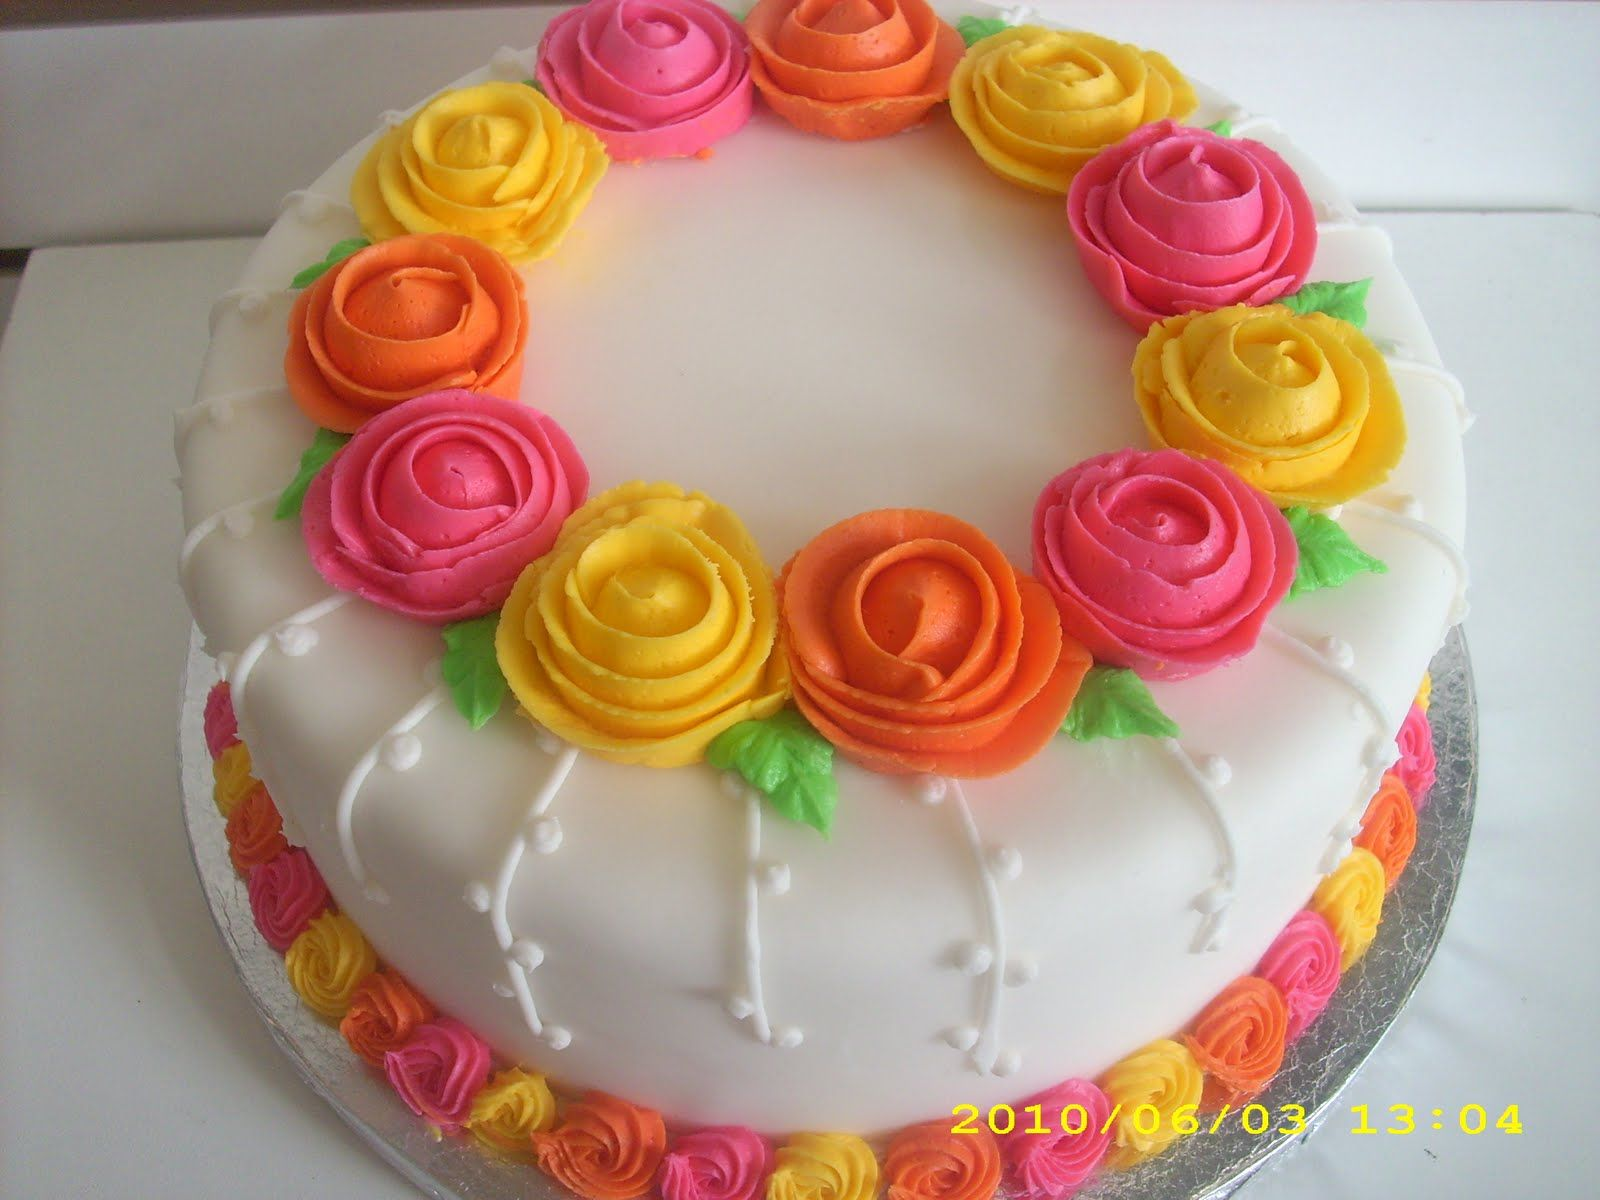 Cake Decoration Flowers Recipe : simple cake decoration the wilton method decorating ...